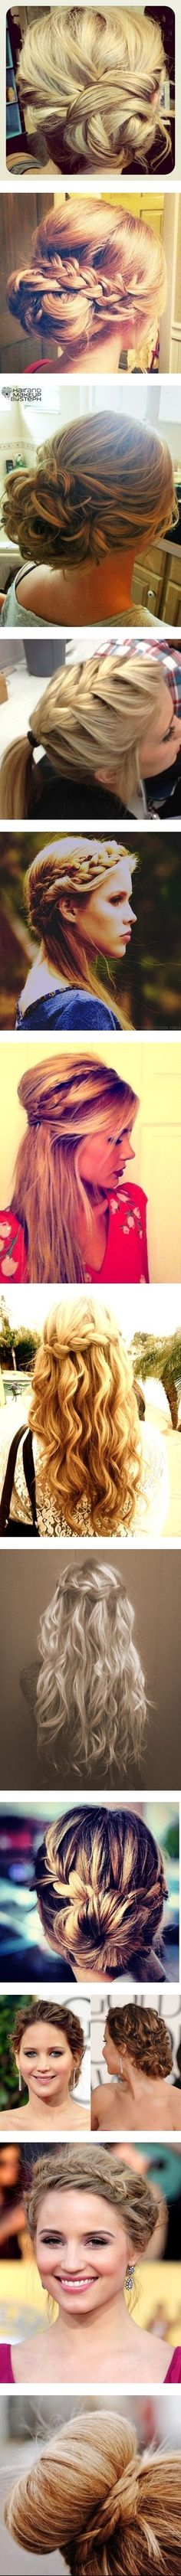 best hair beauty images on pinterest in hair and makeup